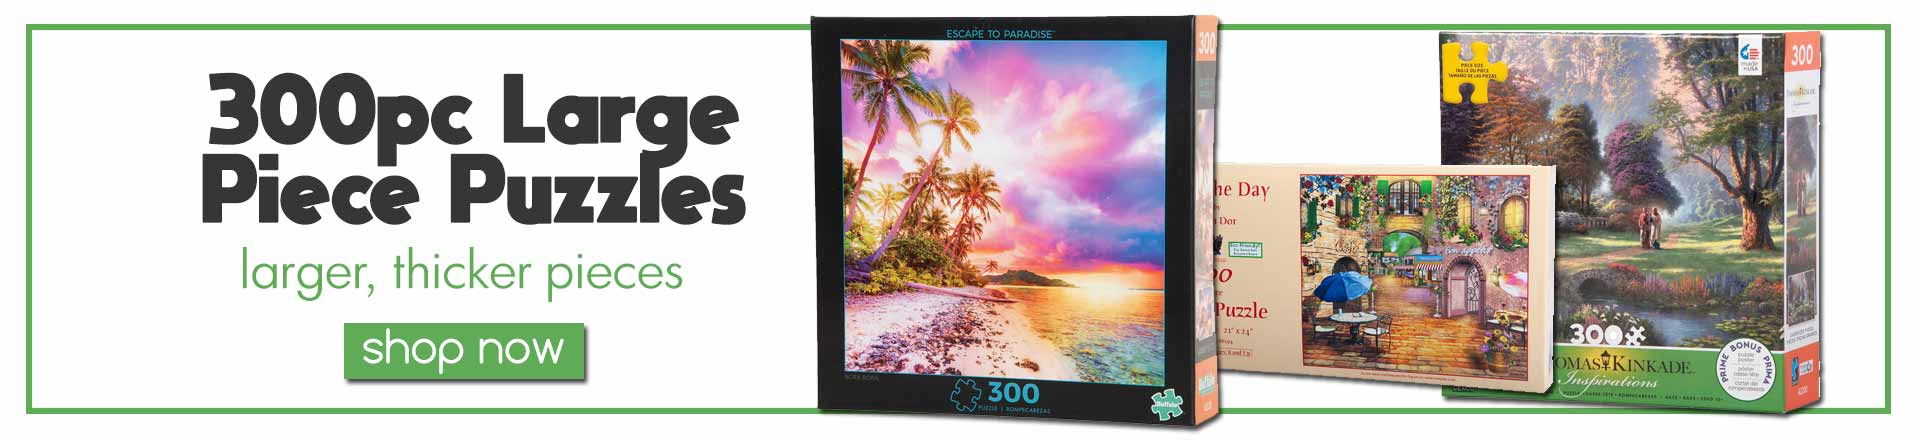 300 Large Piece Jigsaw Puzzles